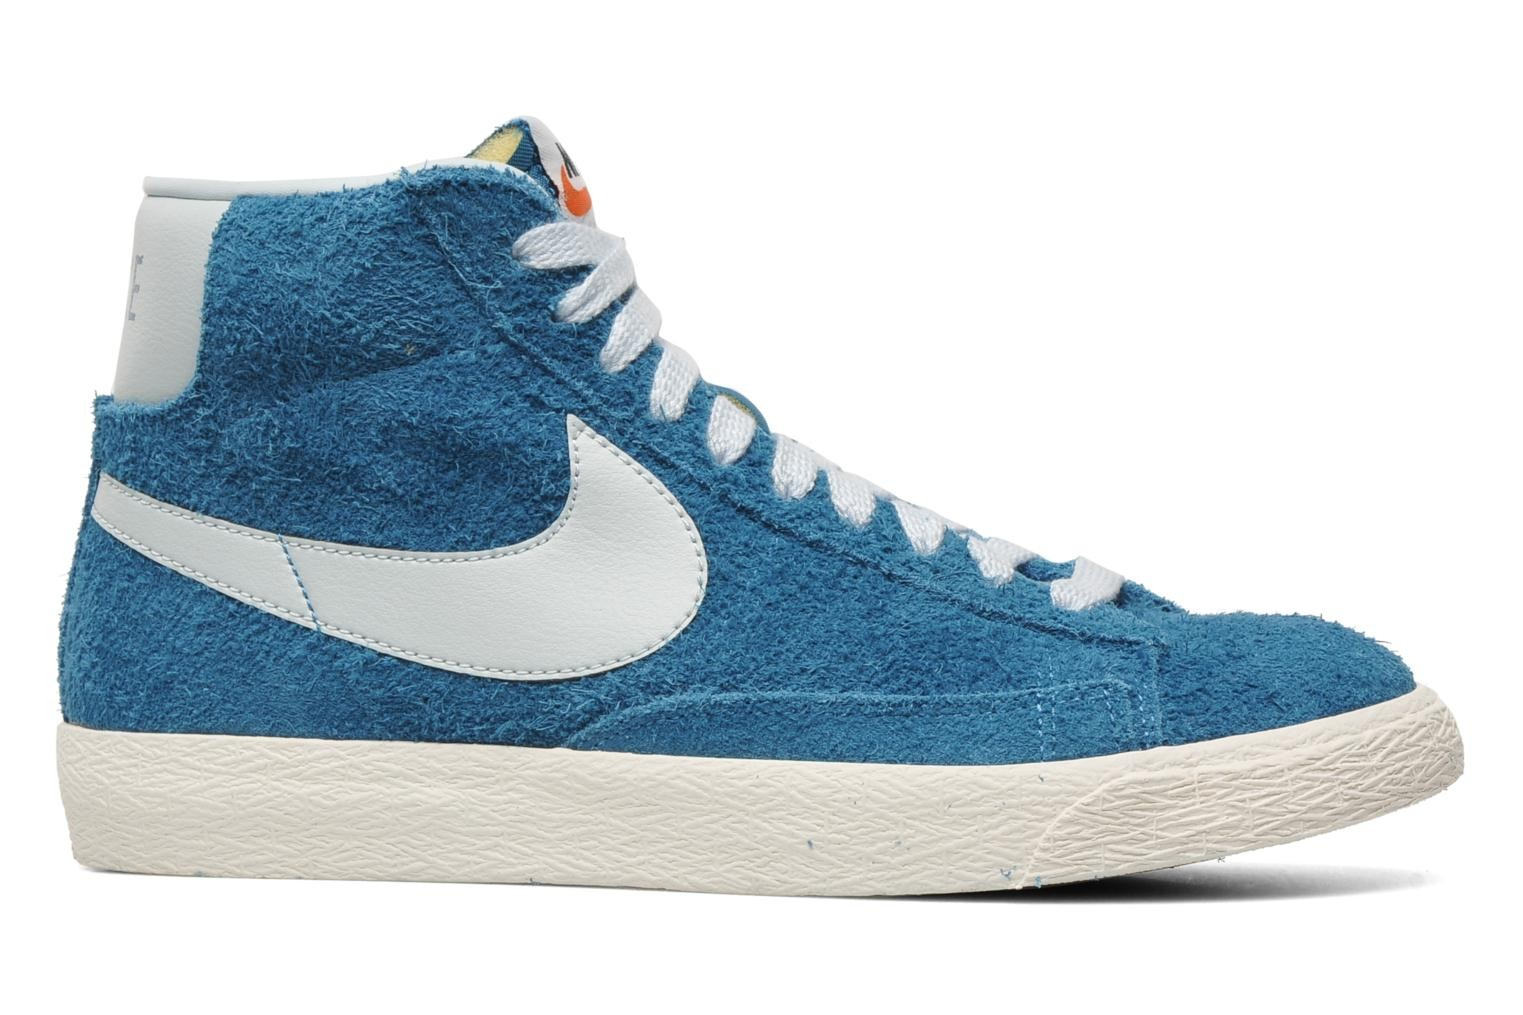 Nike Blazer Mid Prm Vintage Suede Green Abyss Barely Blue Sail Men's Shoe